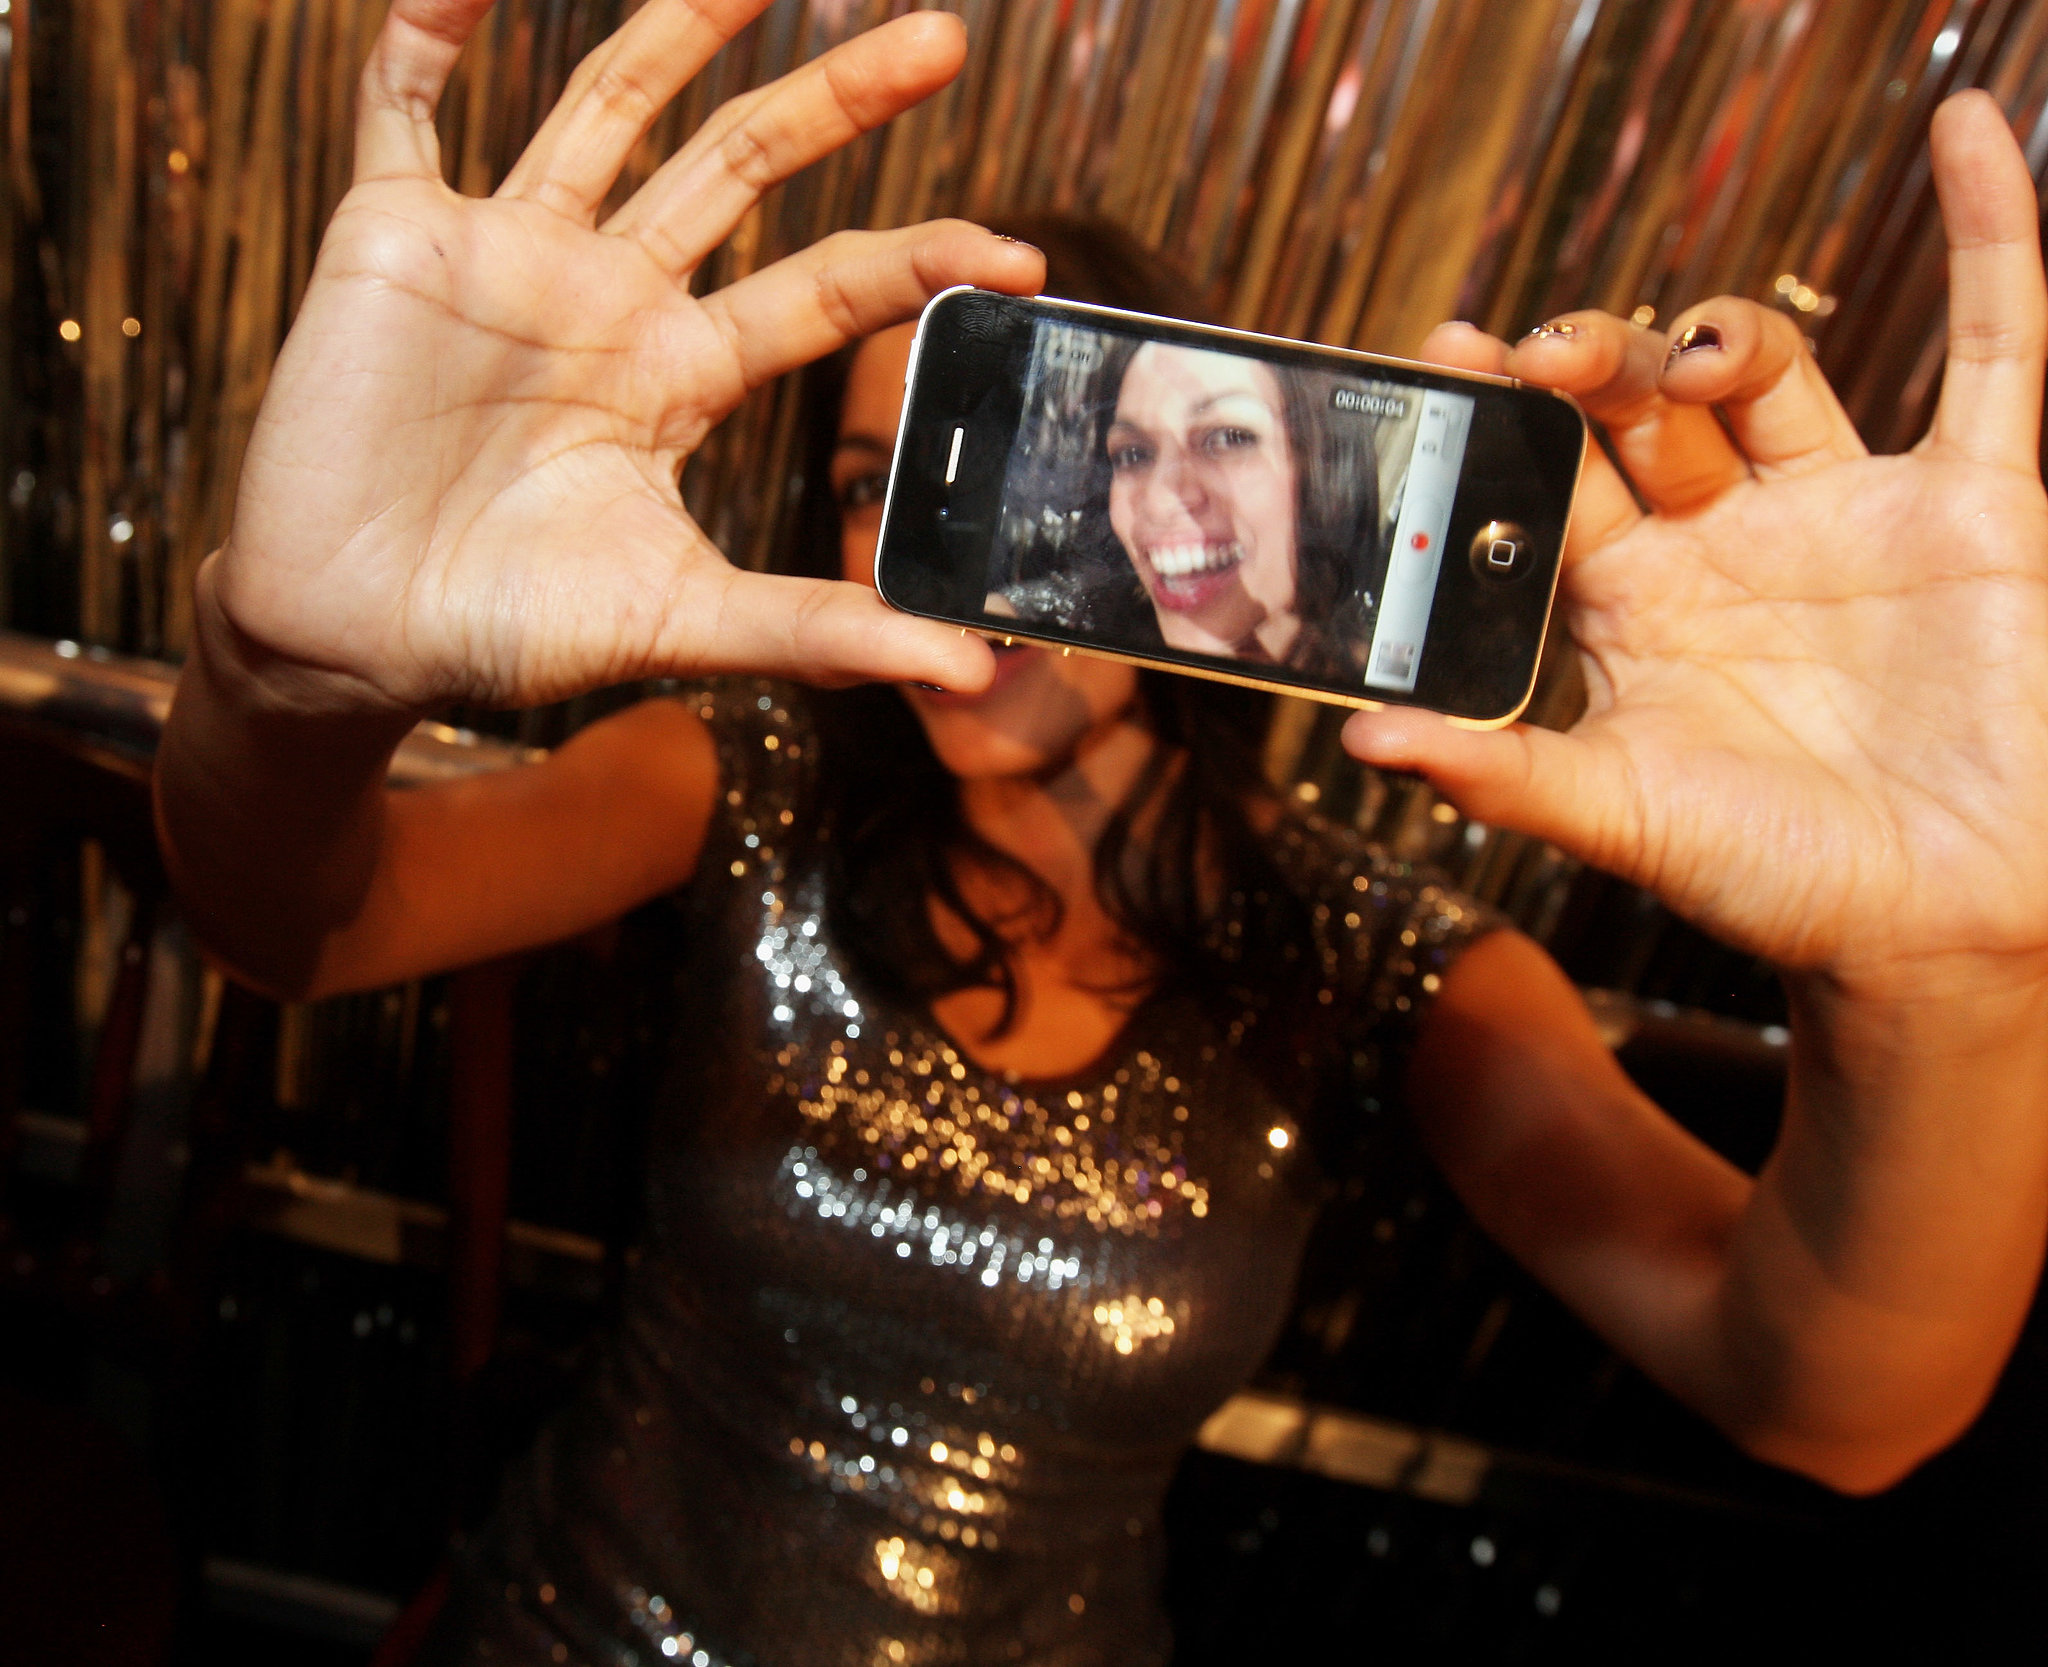 In January 2012, Rosario Dawson took a picture of herself before an event in Cologne, Germany.